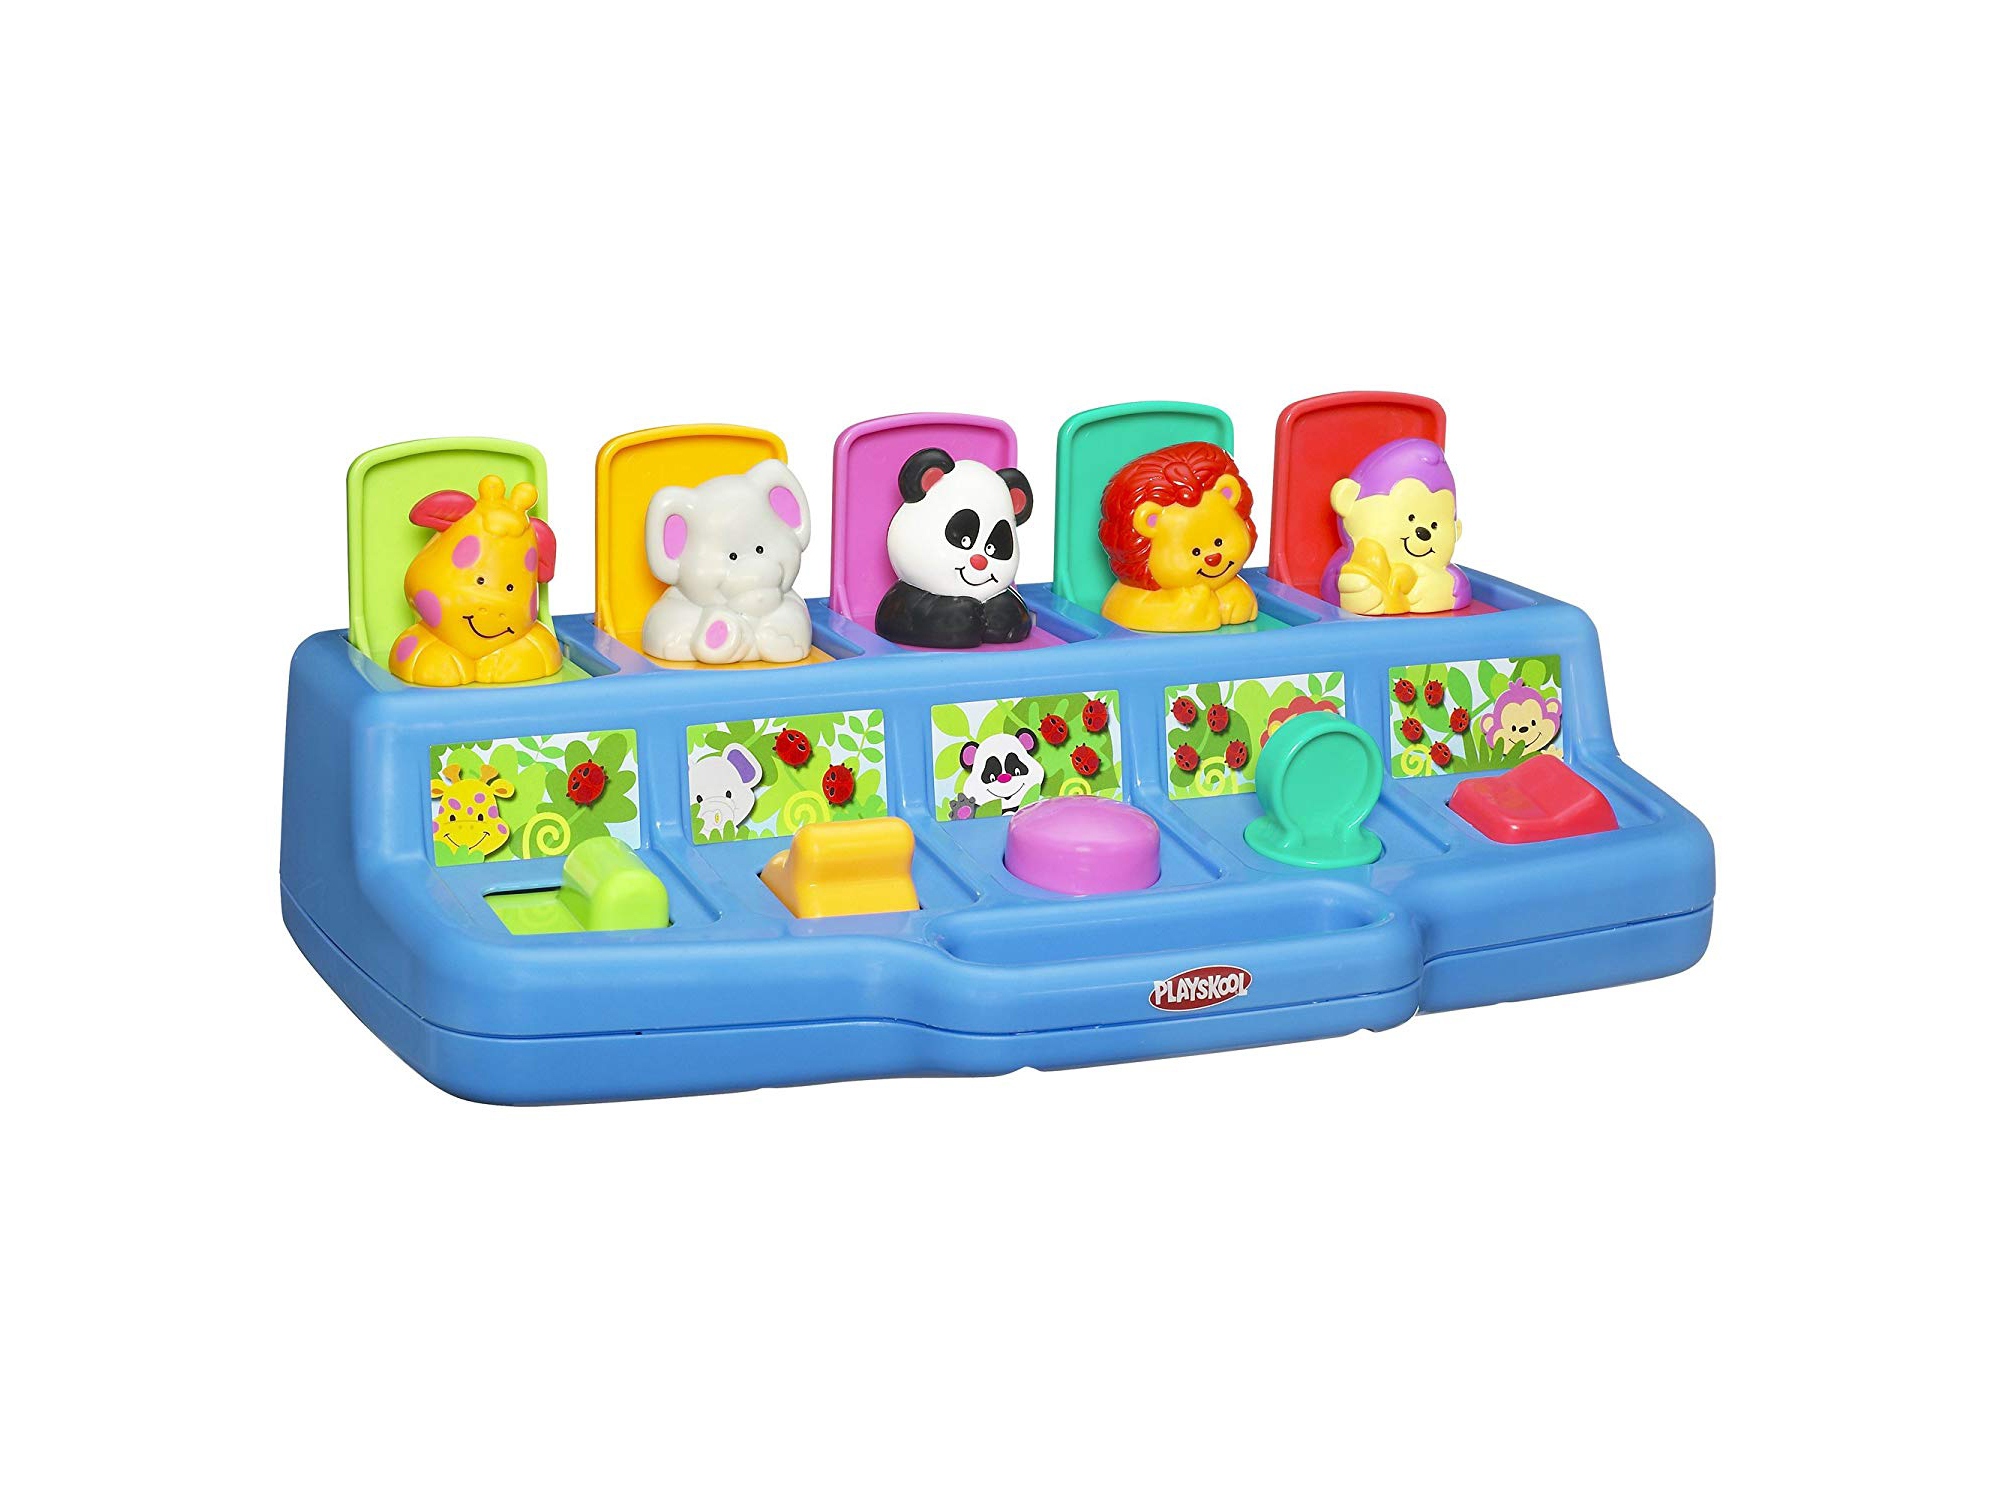 Playskool Poppin' Pals Pop-up Activity Toy